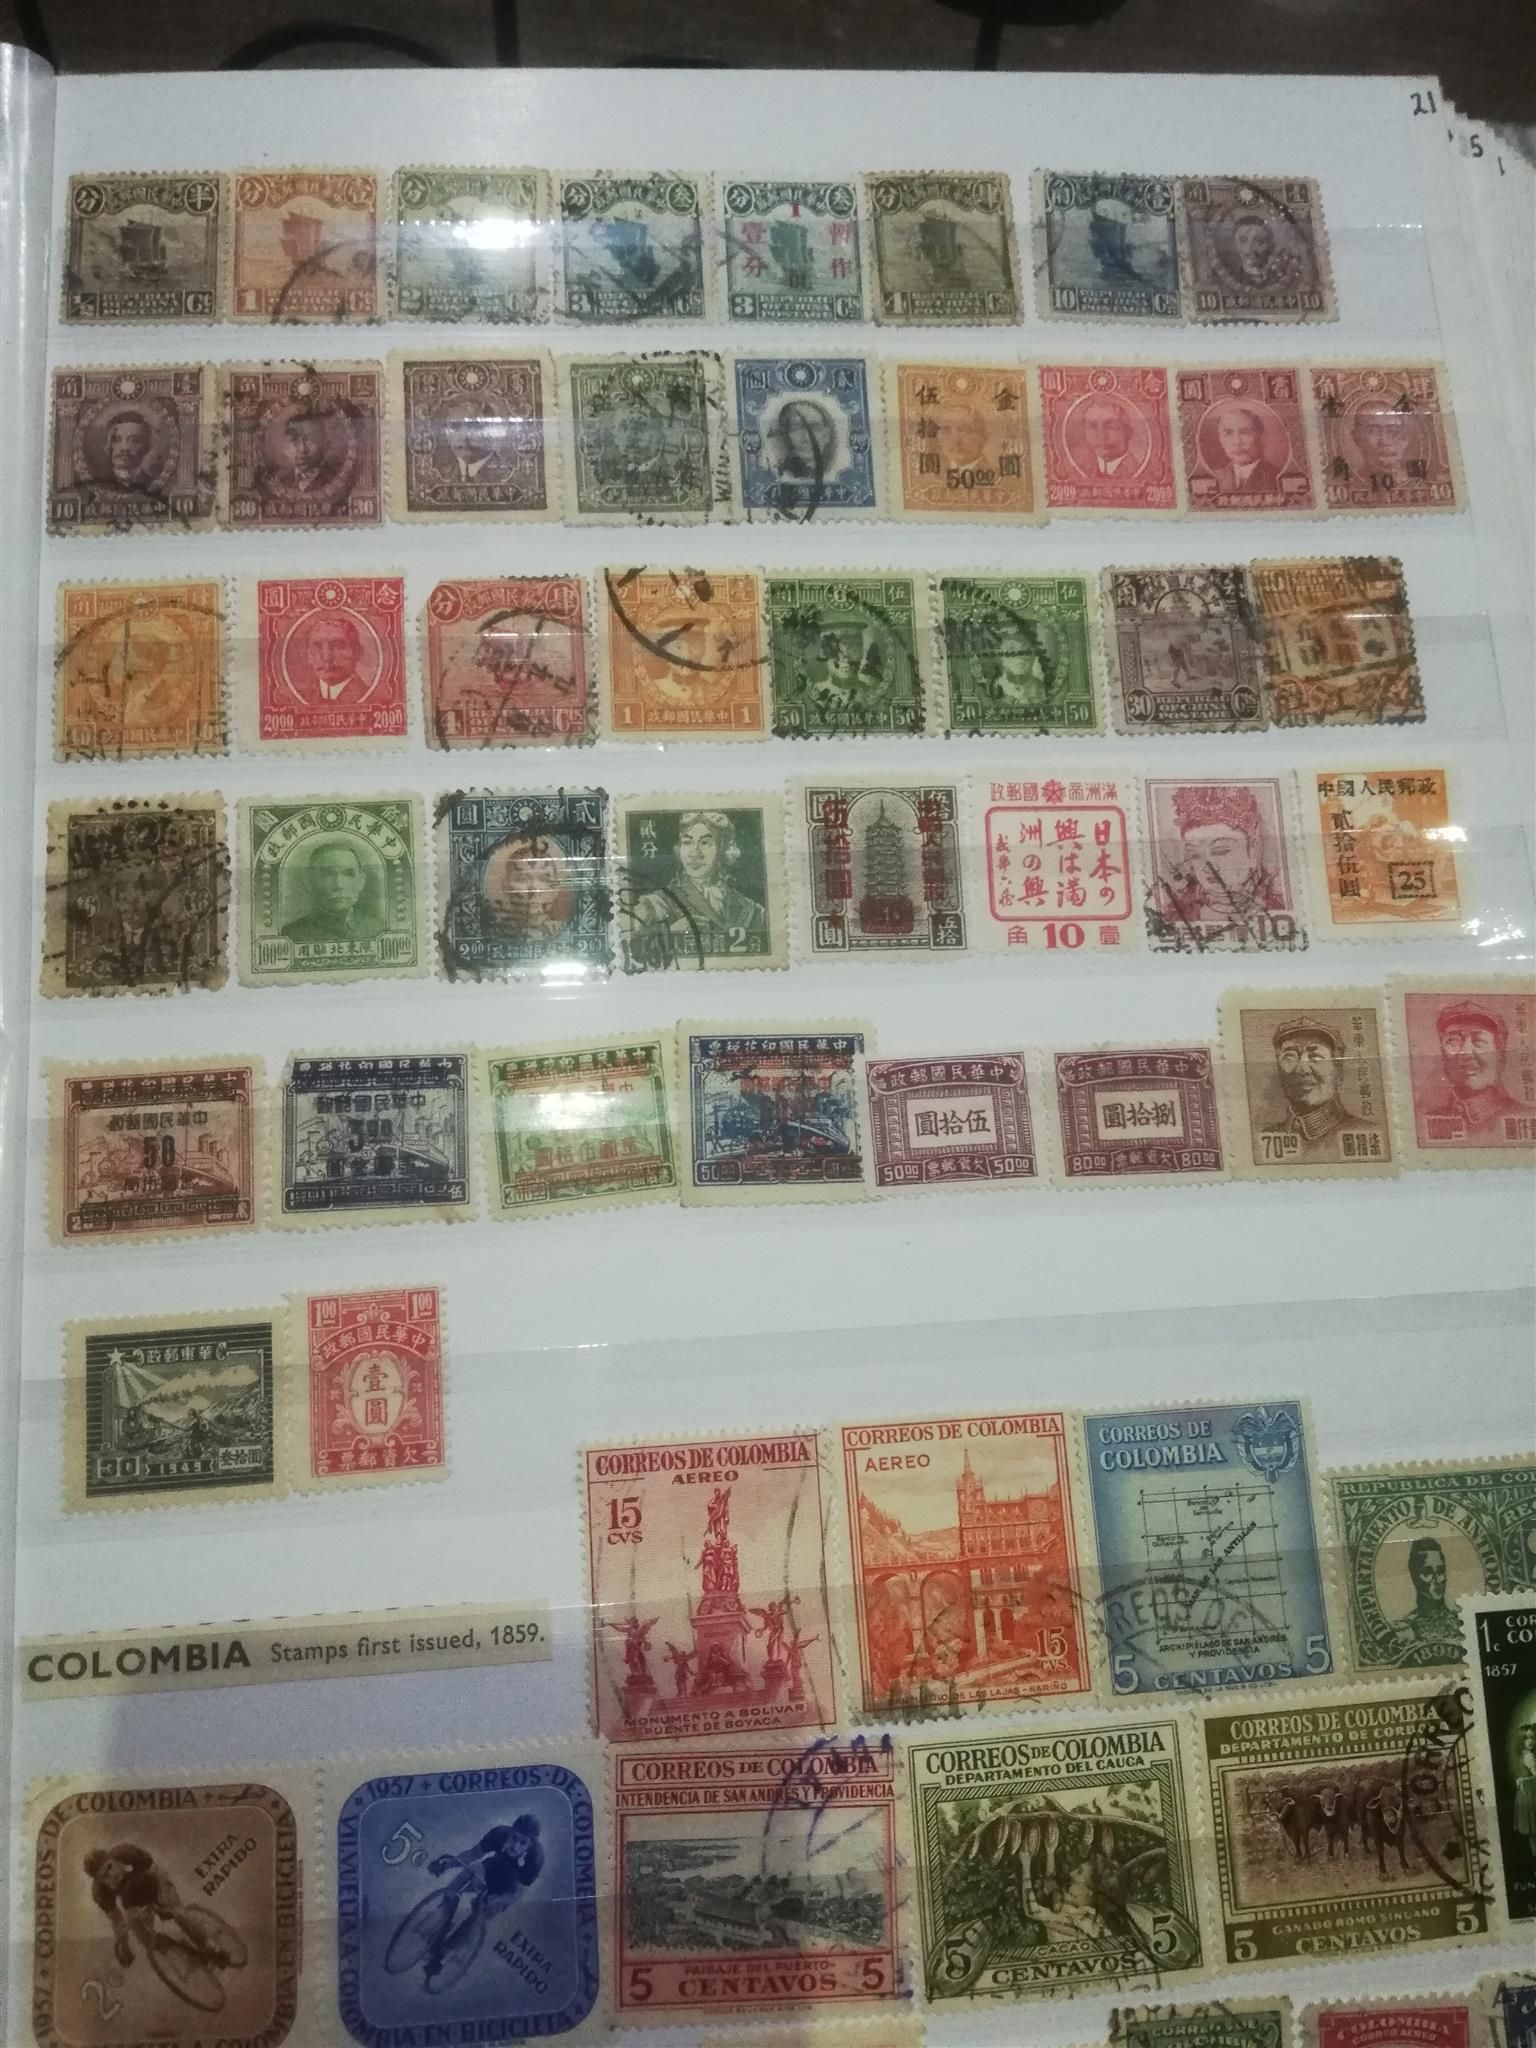 Postal stamps, 8000 some loose. The albums have been sorted into country categories